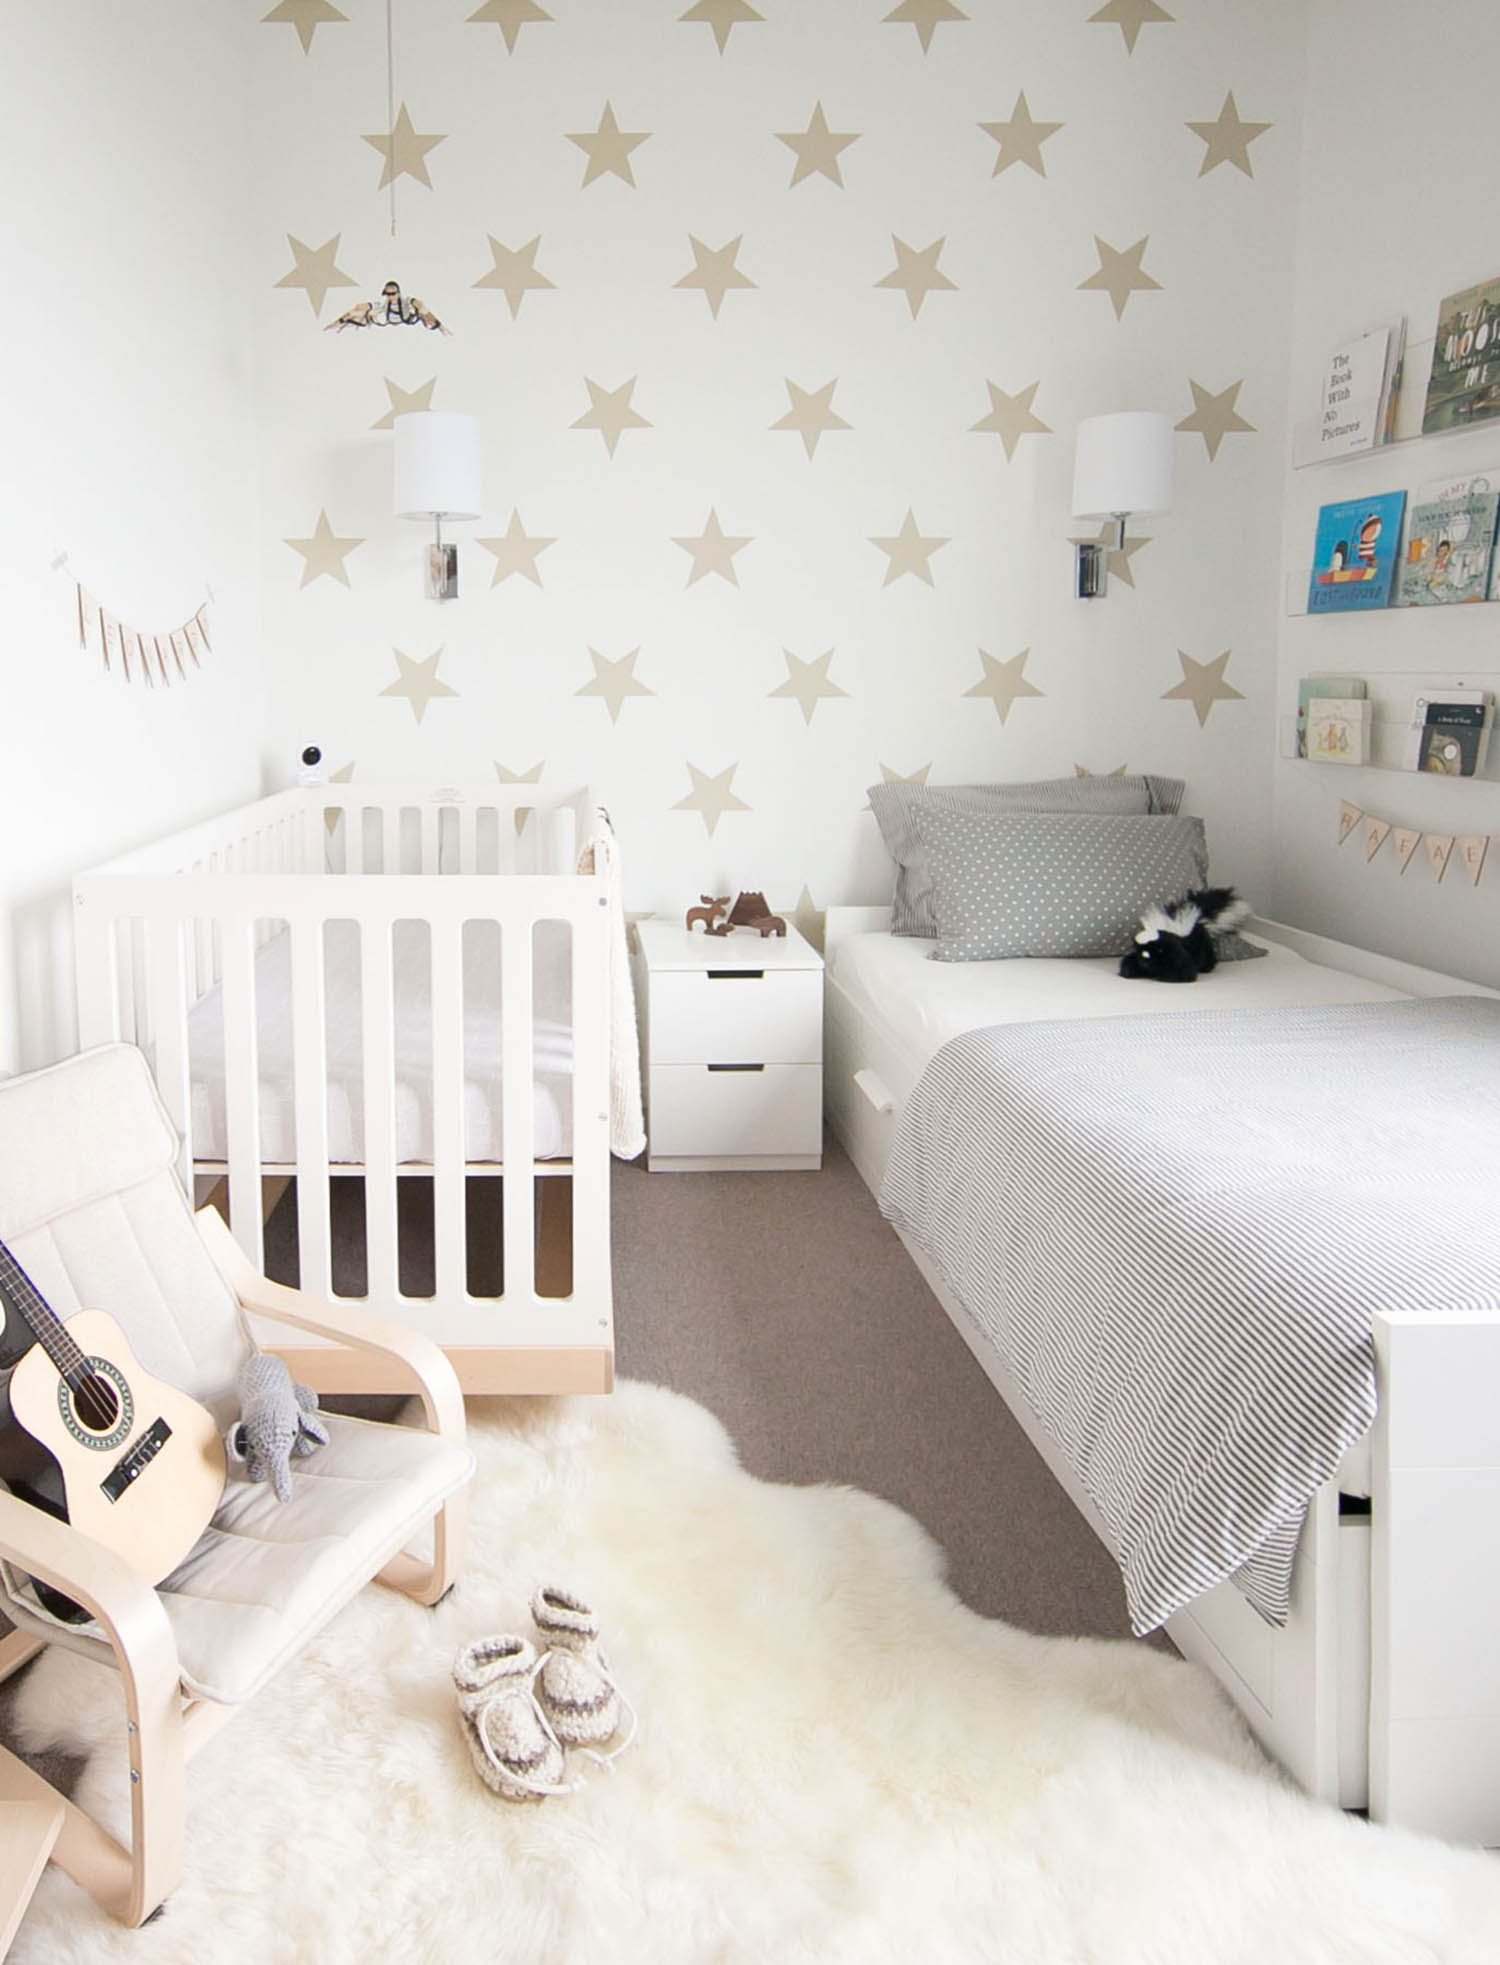 Shared baby and toddler room in tiny space by Vancovuer designer Melissa Barling